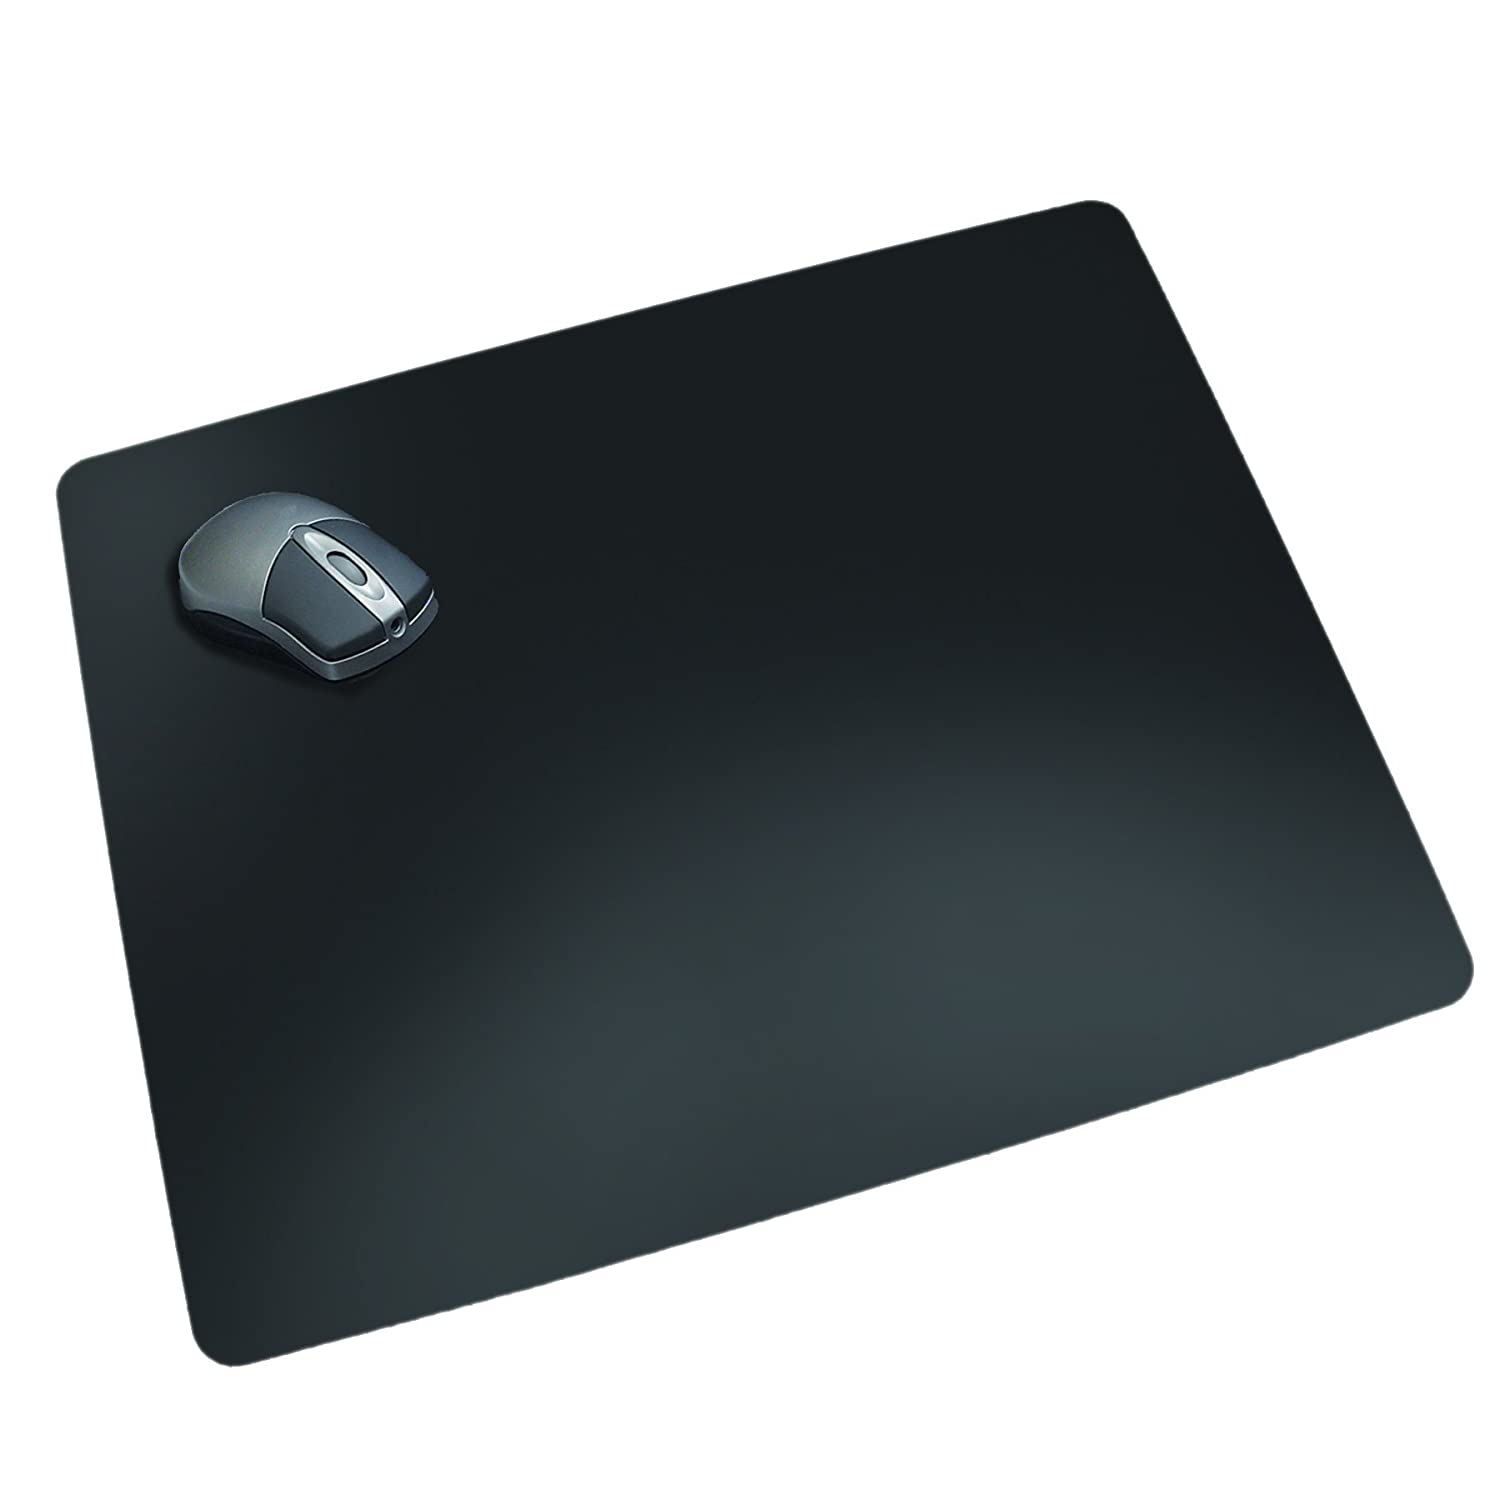 desk writing pad Custom sized desk pads we can make desk pads in almost any size or shape our one-piece pads are limited by the sizes of the raw materials that we use.